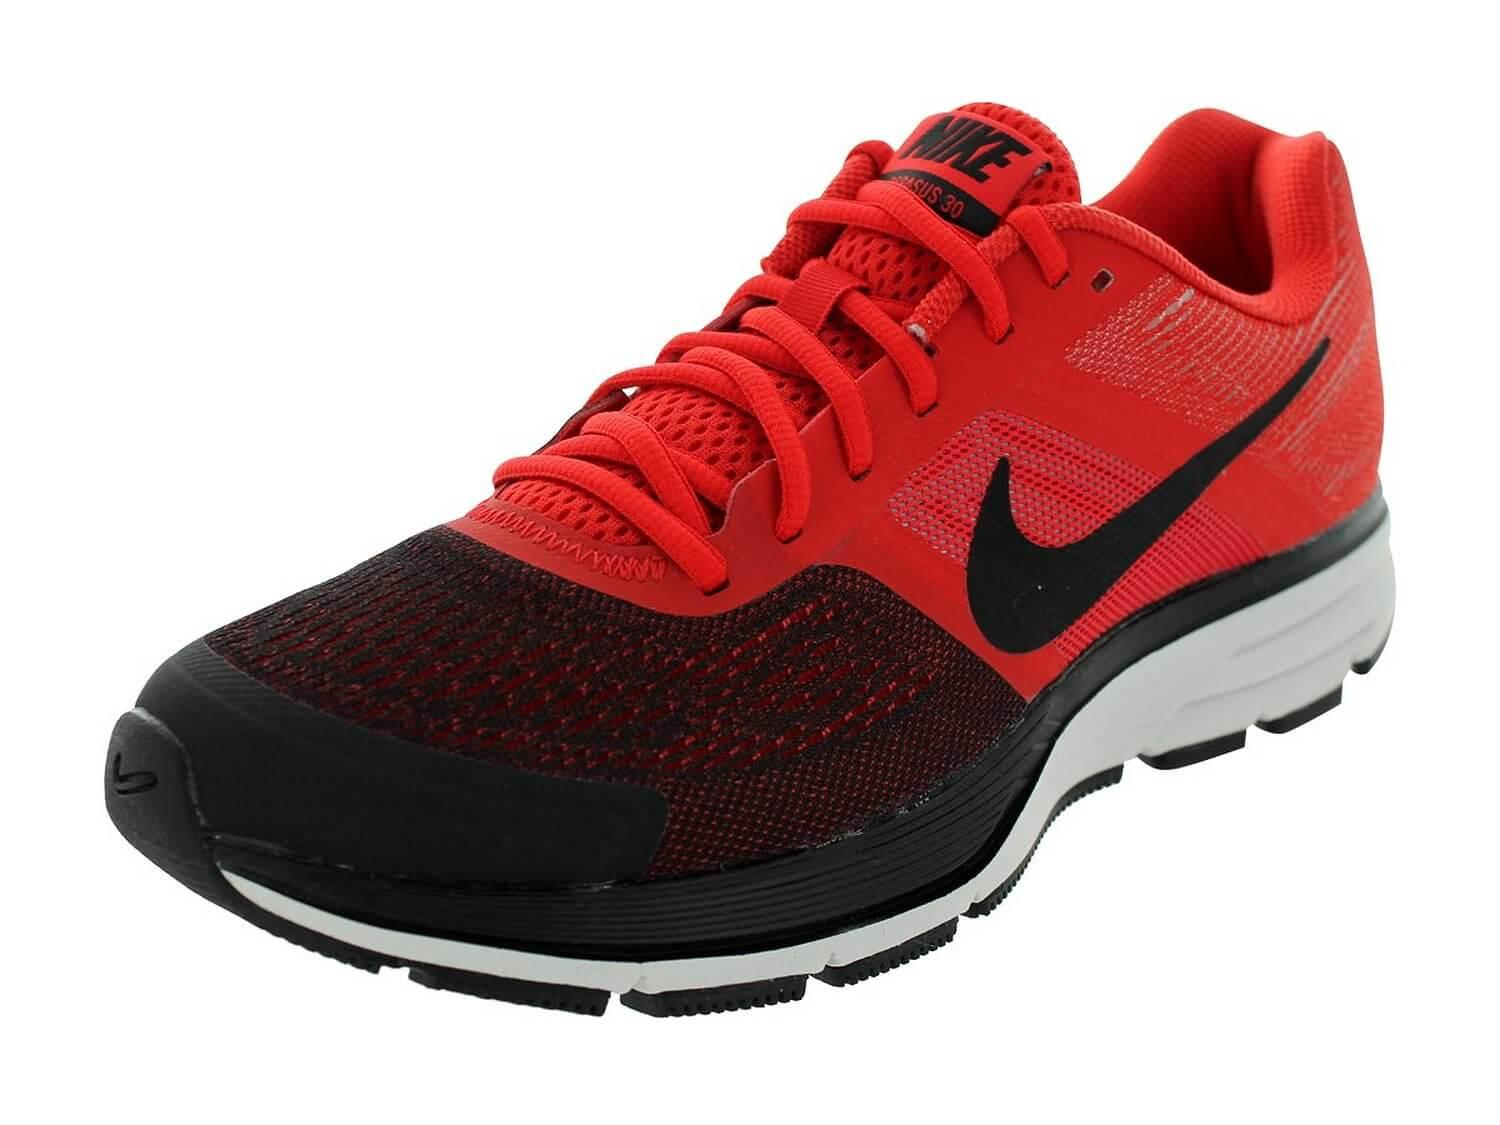 Nike Air Pegasus 30 Review To Buy Or Not In Aug 2017